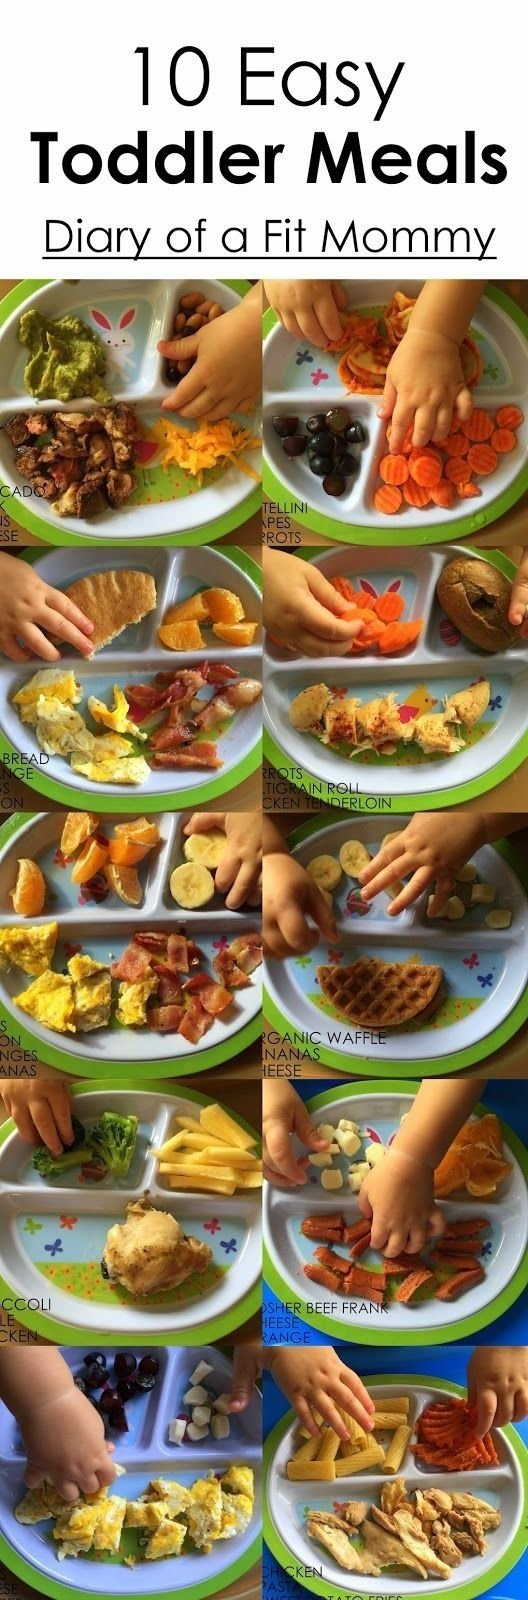 10 famous lunch ideas for 2 year old